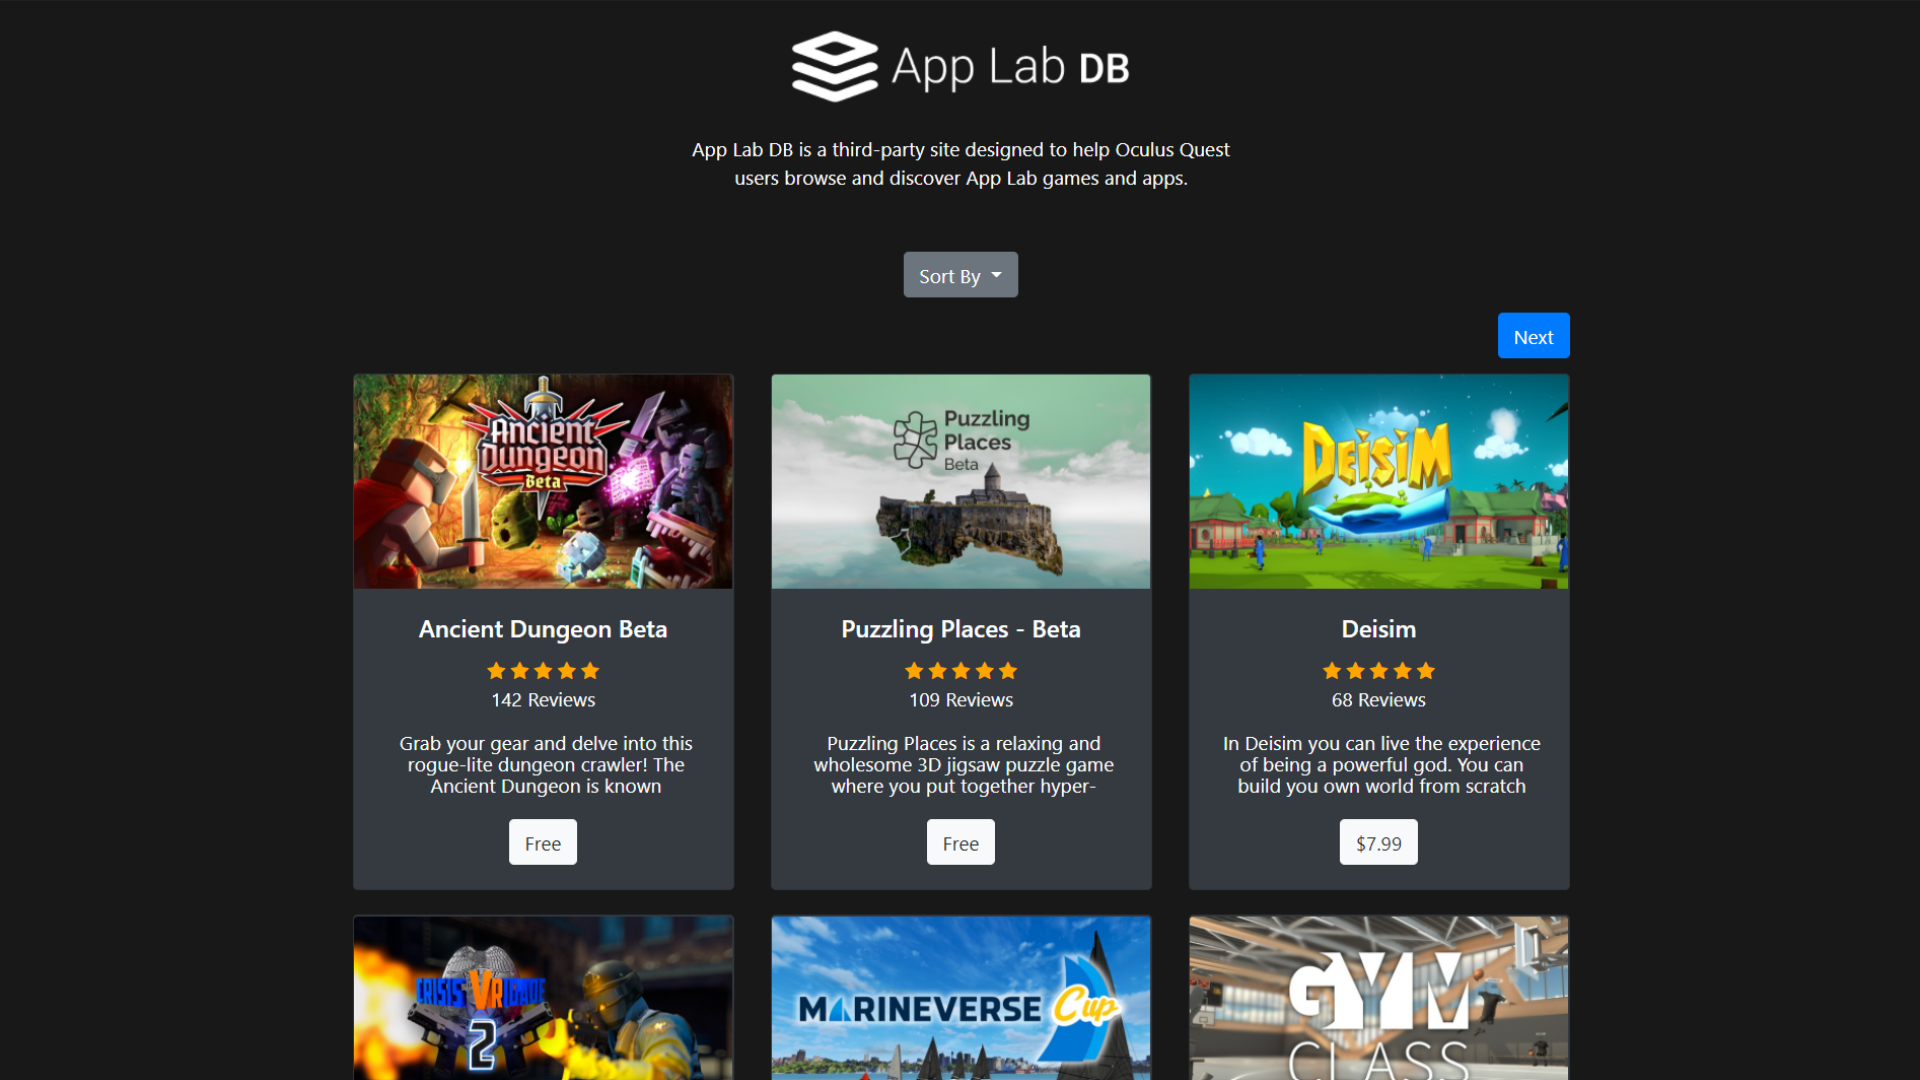 Rob Chinery's Unofficial App Lab unlisted games and apps store is one of the most popular.